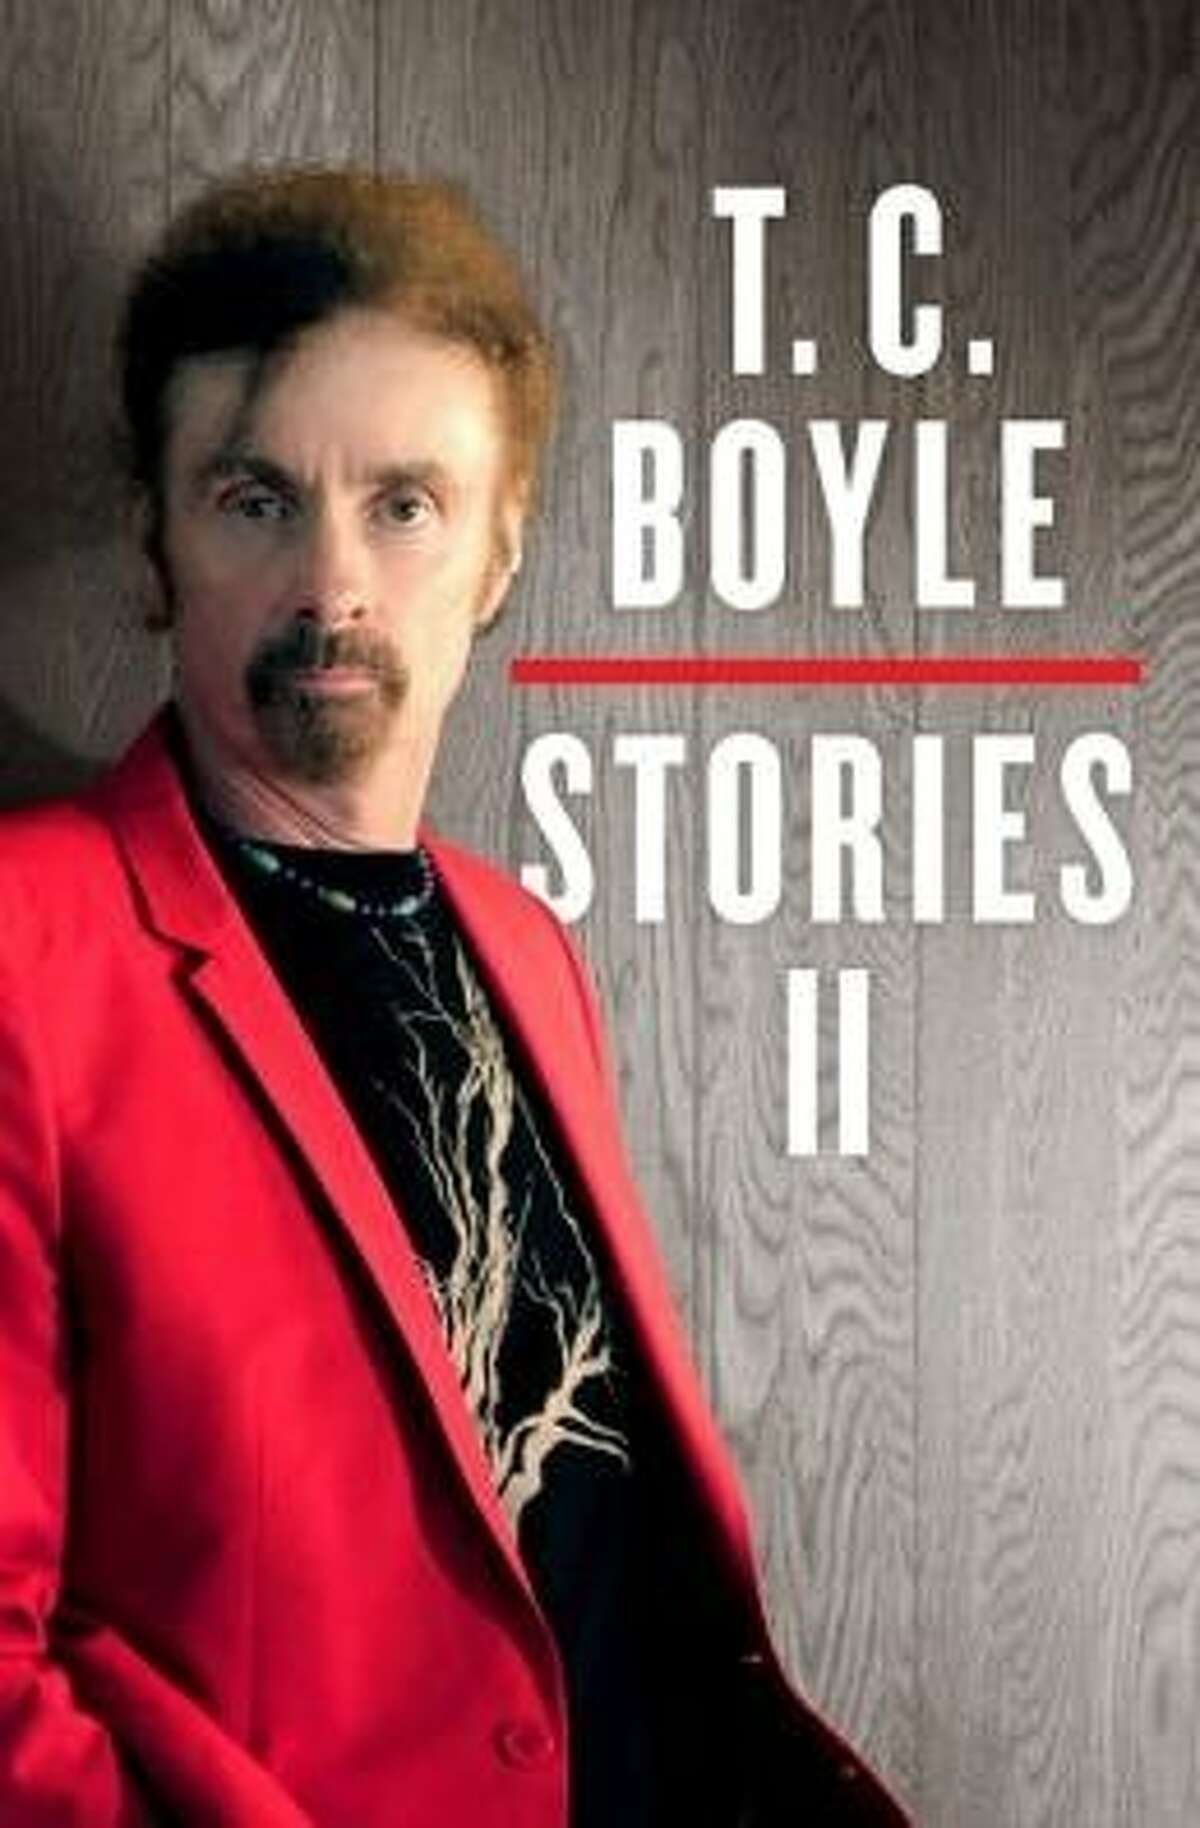 Stories II: The Collected Stories of T. Coraghessan Boyle, Vol. II, by T.C. Boyle